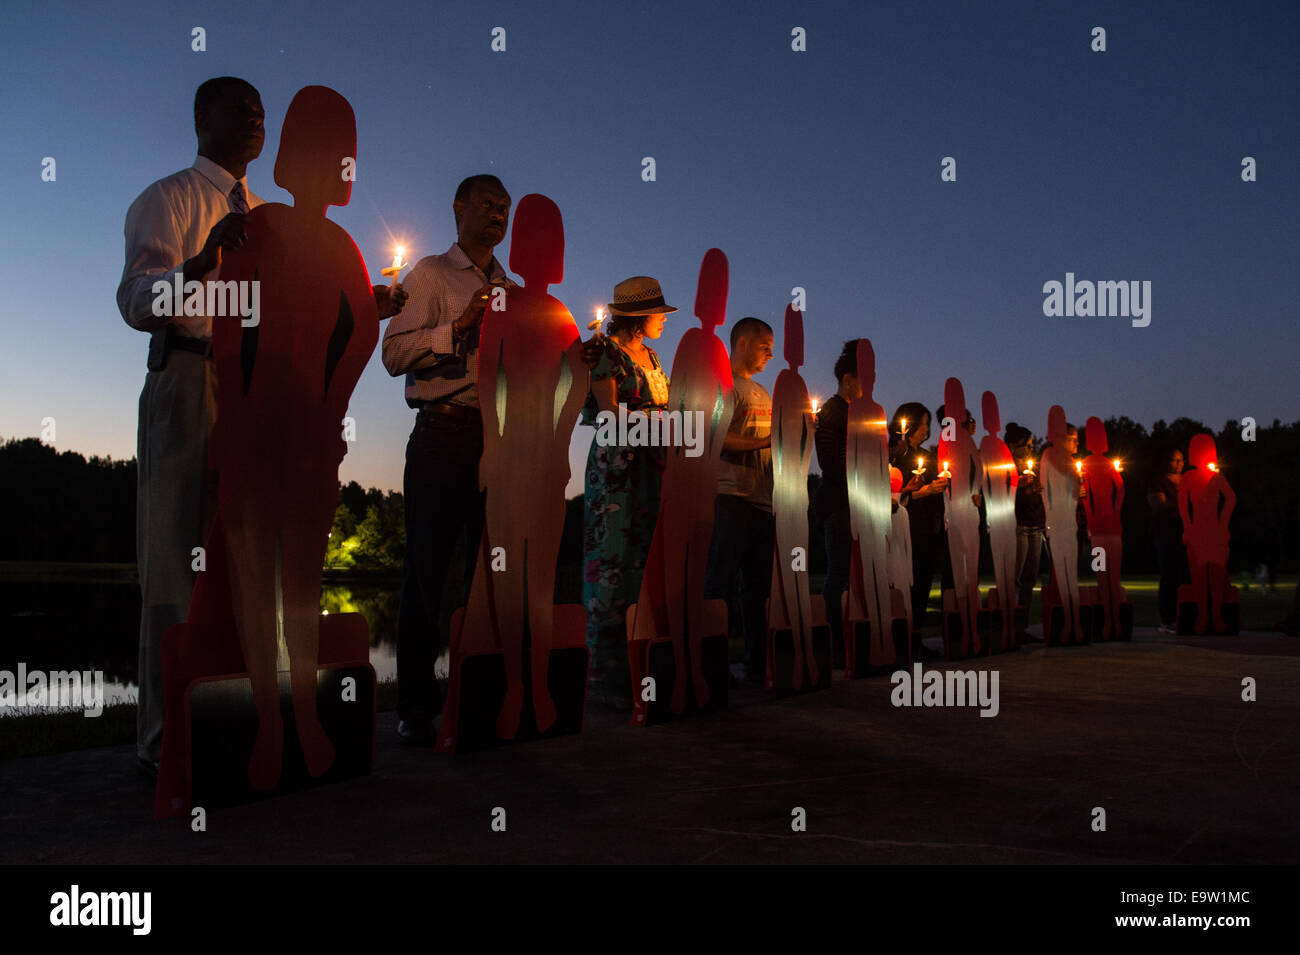 Volunteers hold cardboard references to domestic violence victims during a candlelight vigil Oct. 21, 2014, at the Stock Photo